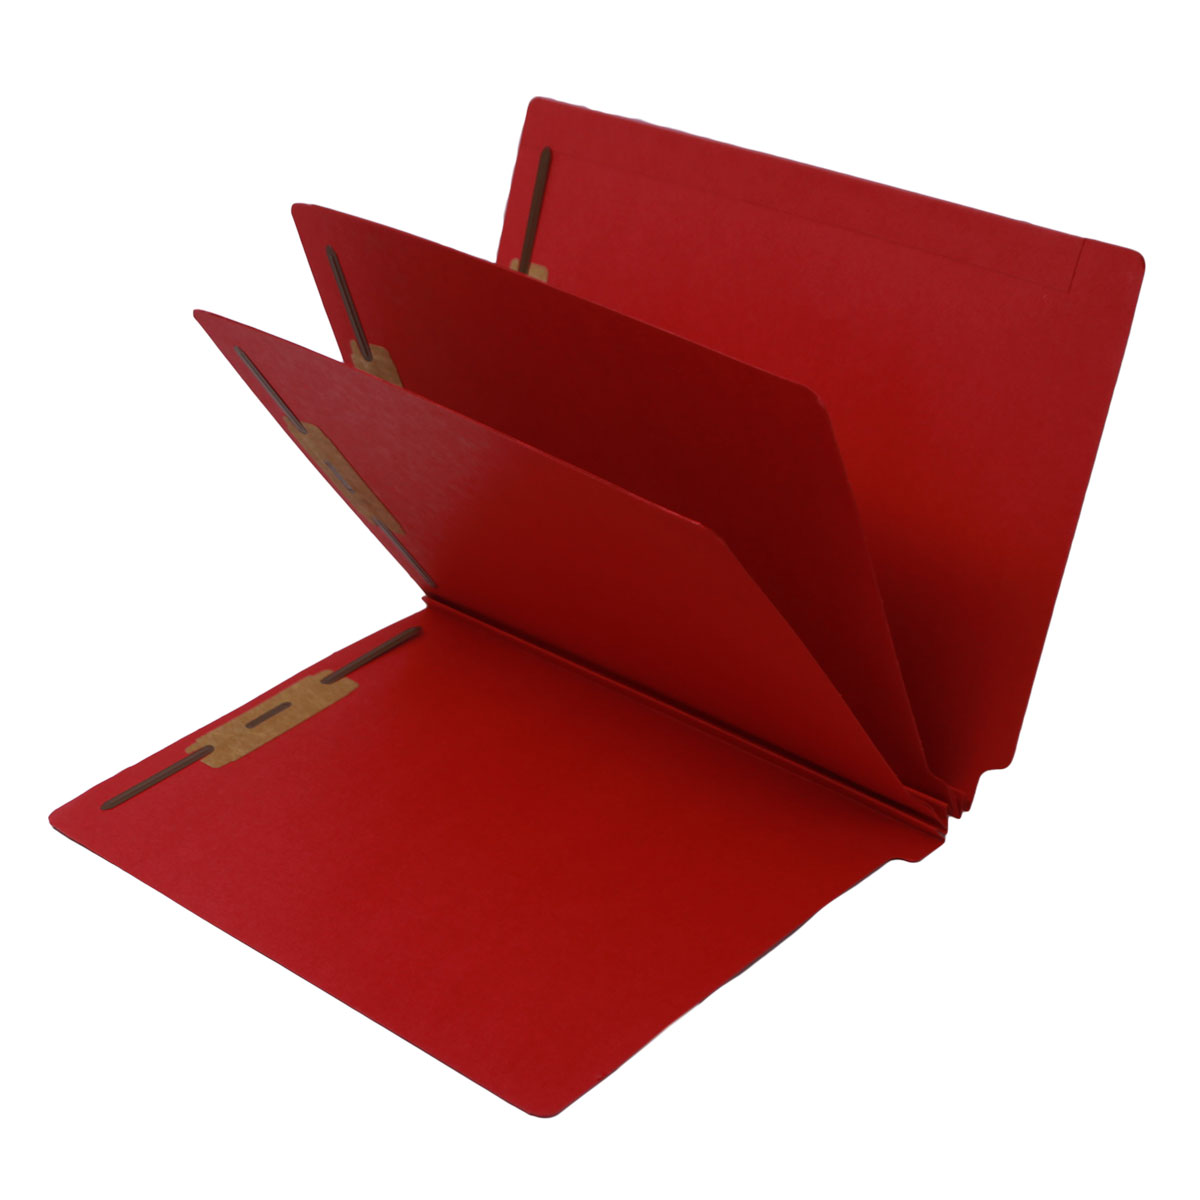 S-9240-RED - 14 Pt. Red Classification Folders, Full Cut End Tab, Letter Size, 2 Dividers (Box of 15)